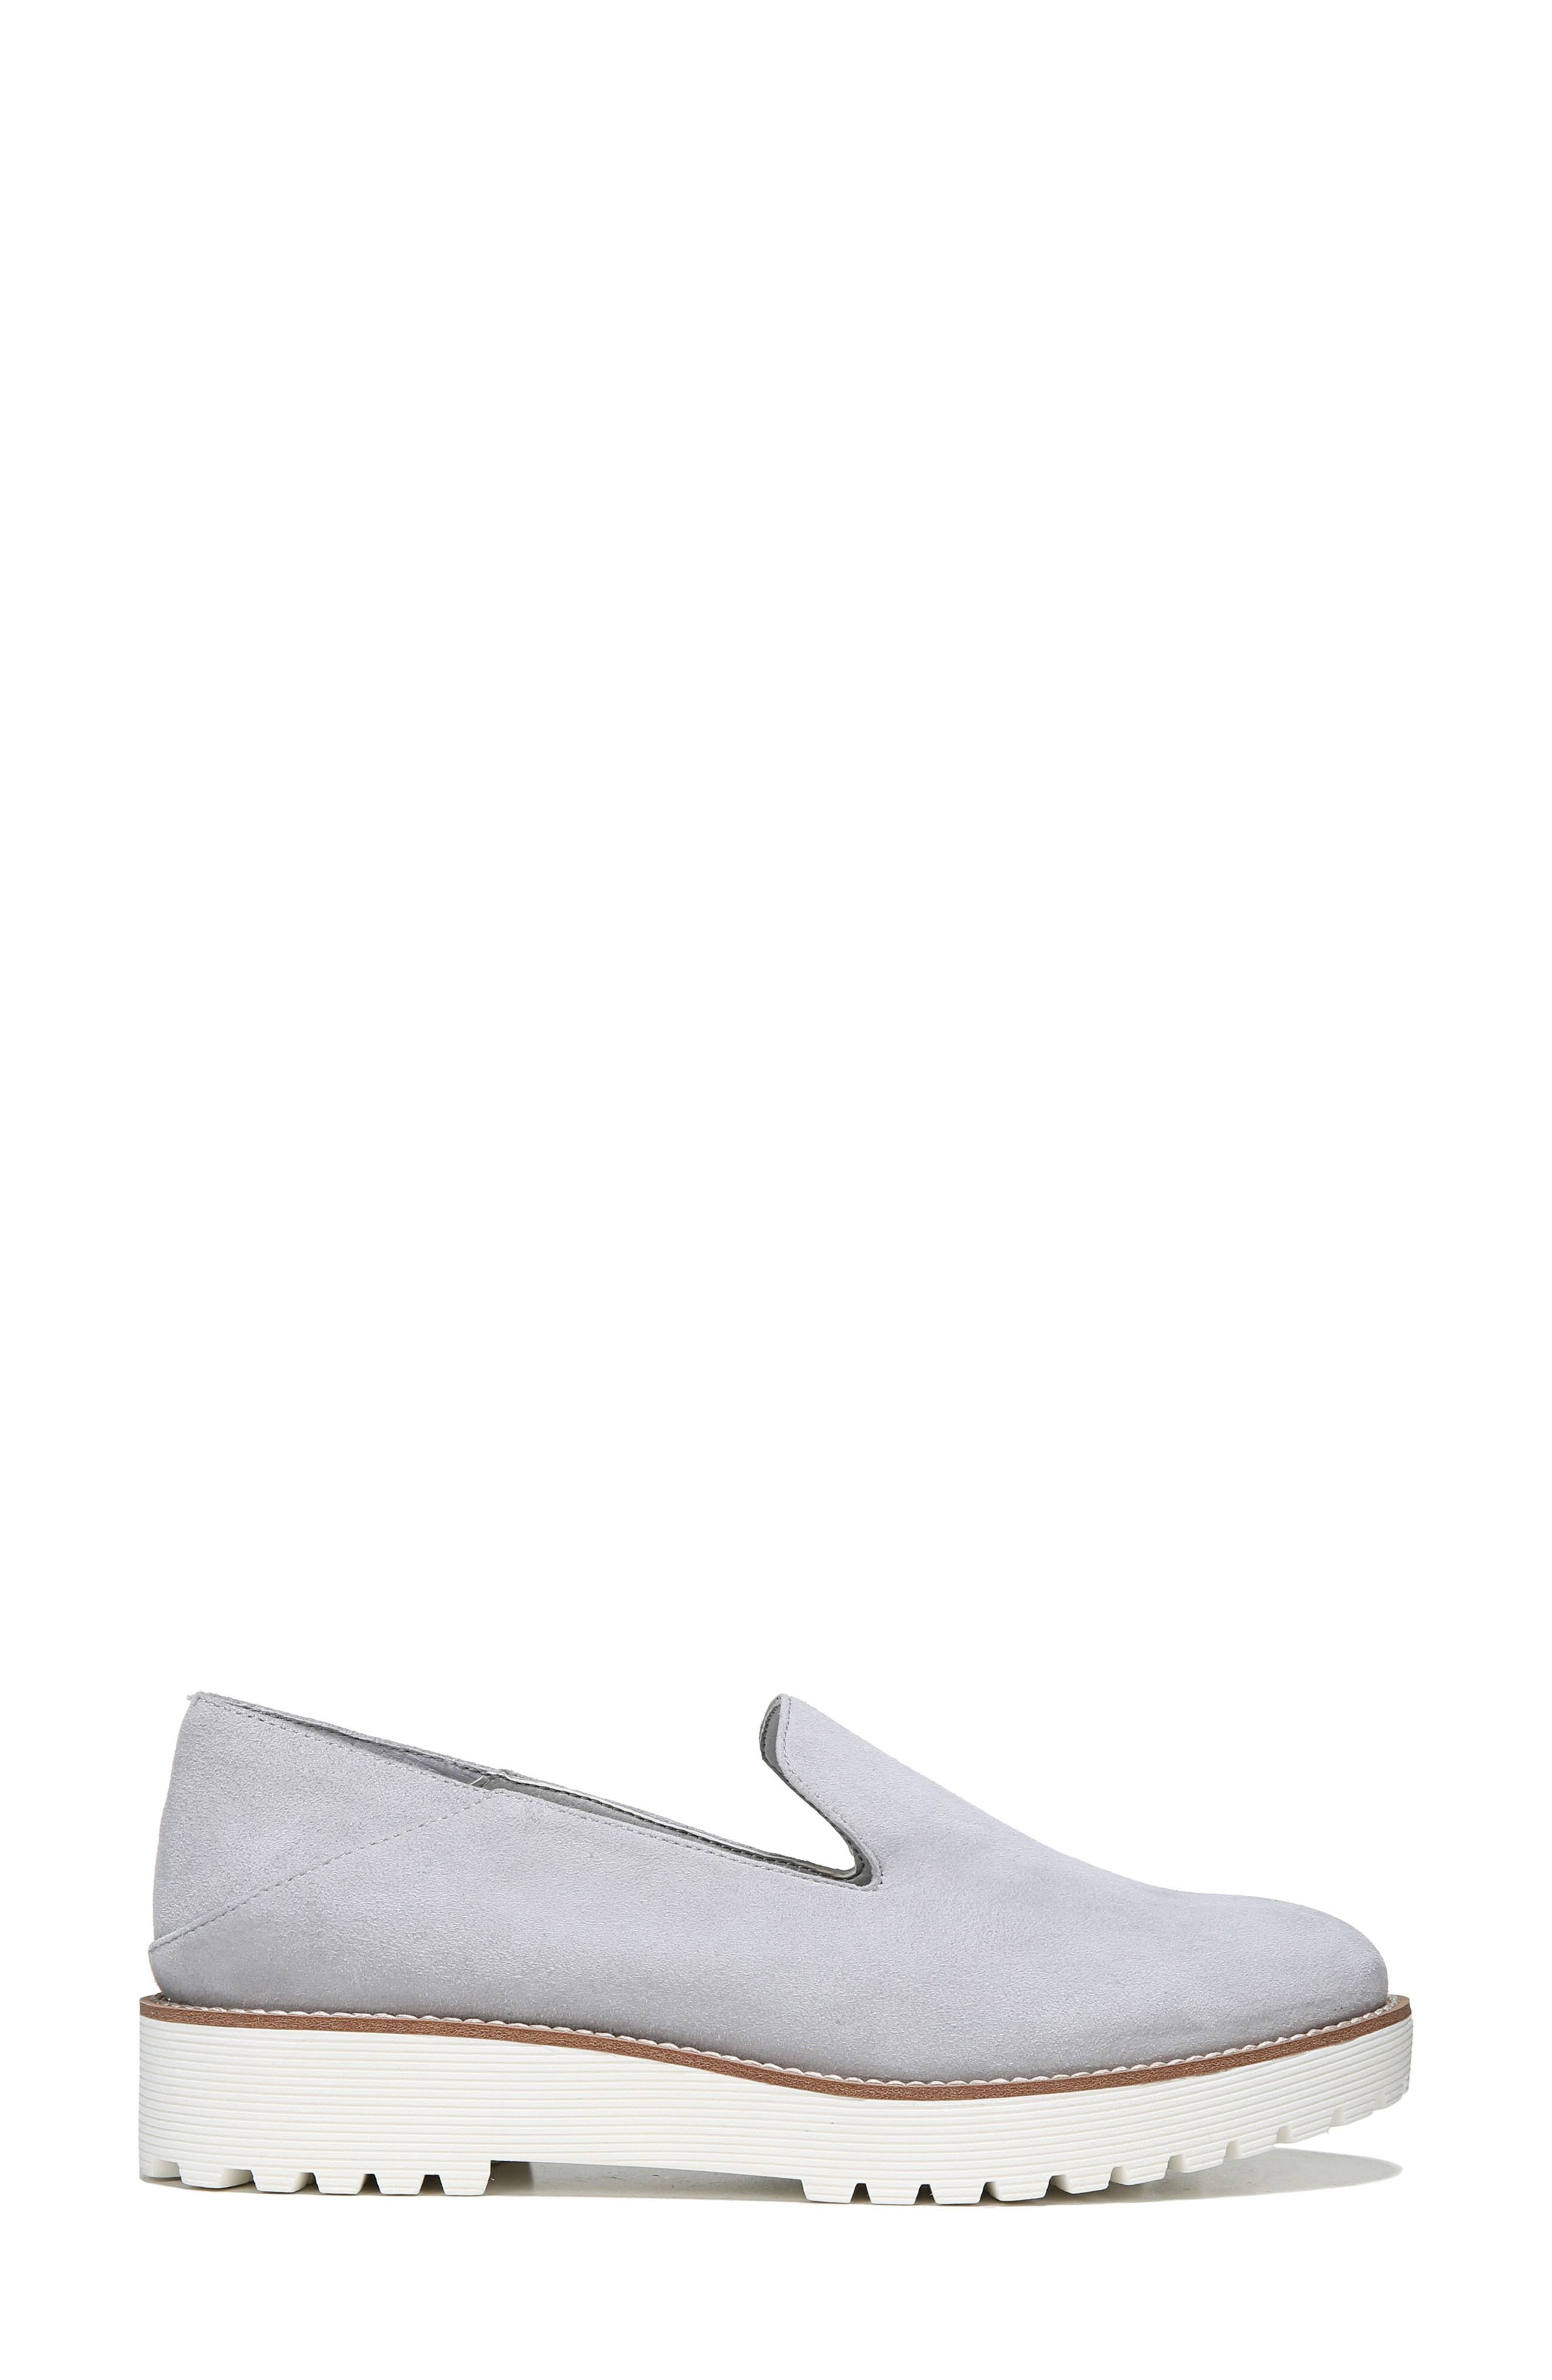 Jaxton Loafer,                             Alternate thumbnail 4, color,                             Artic Grey Suede